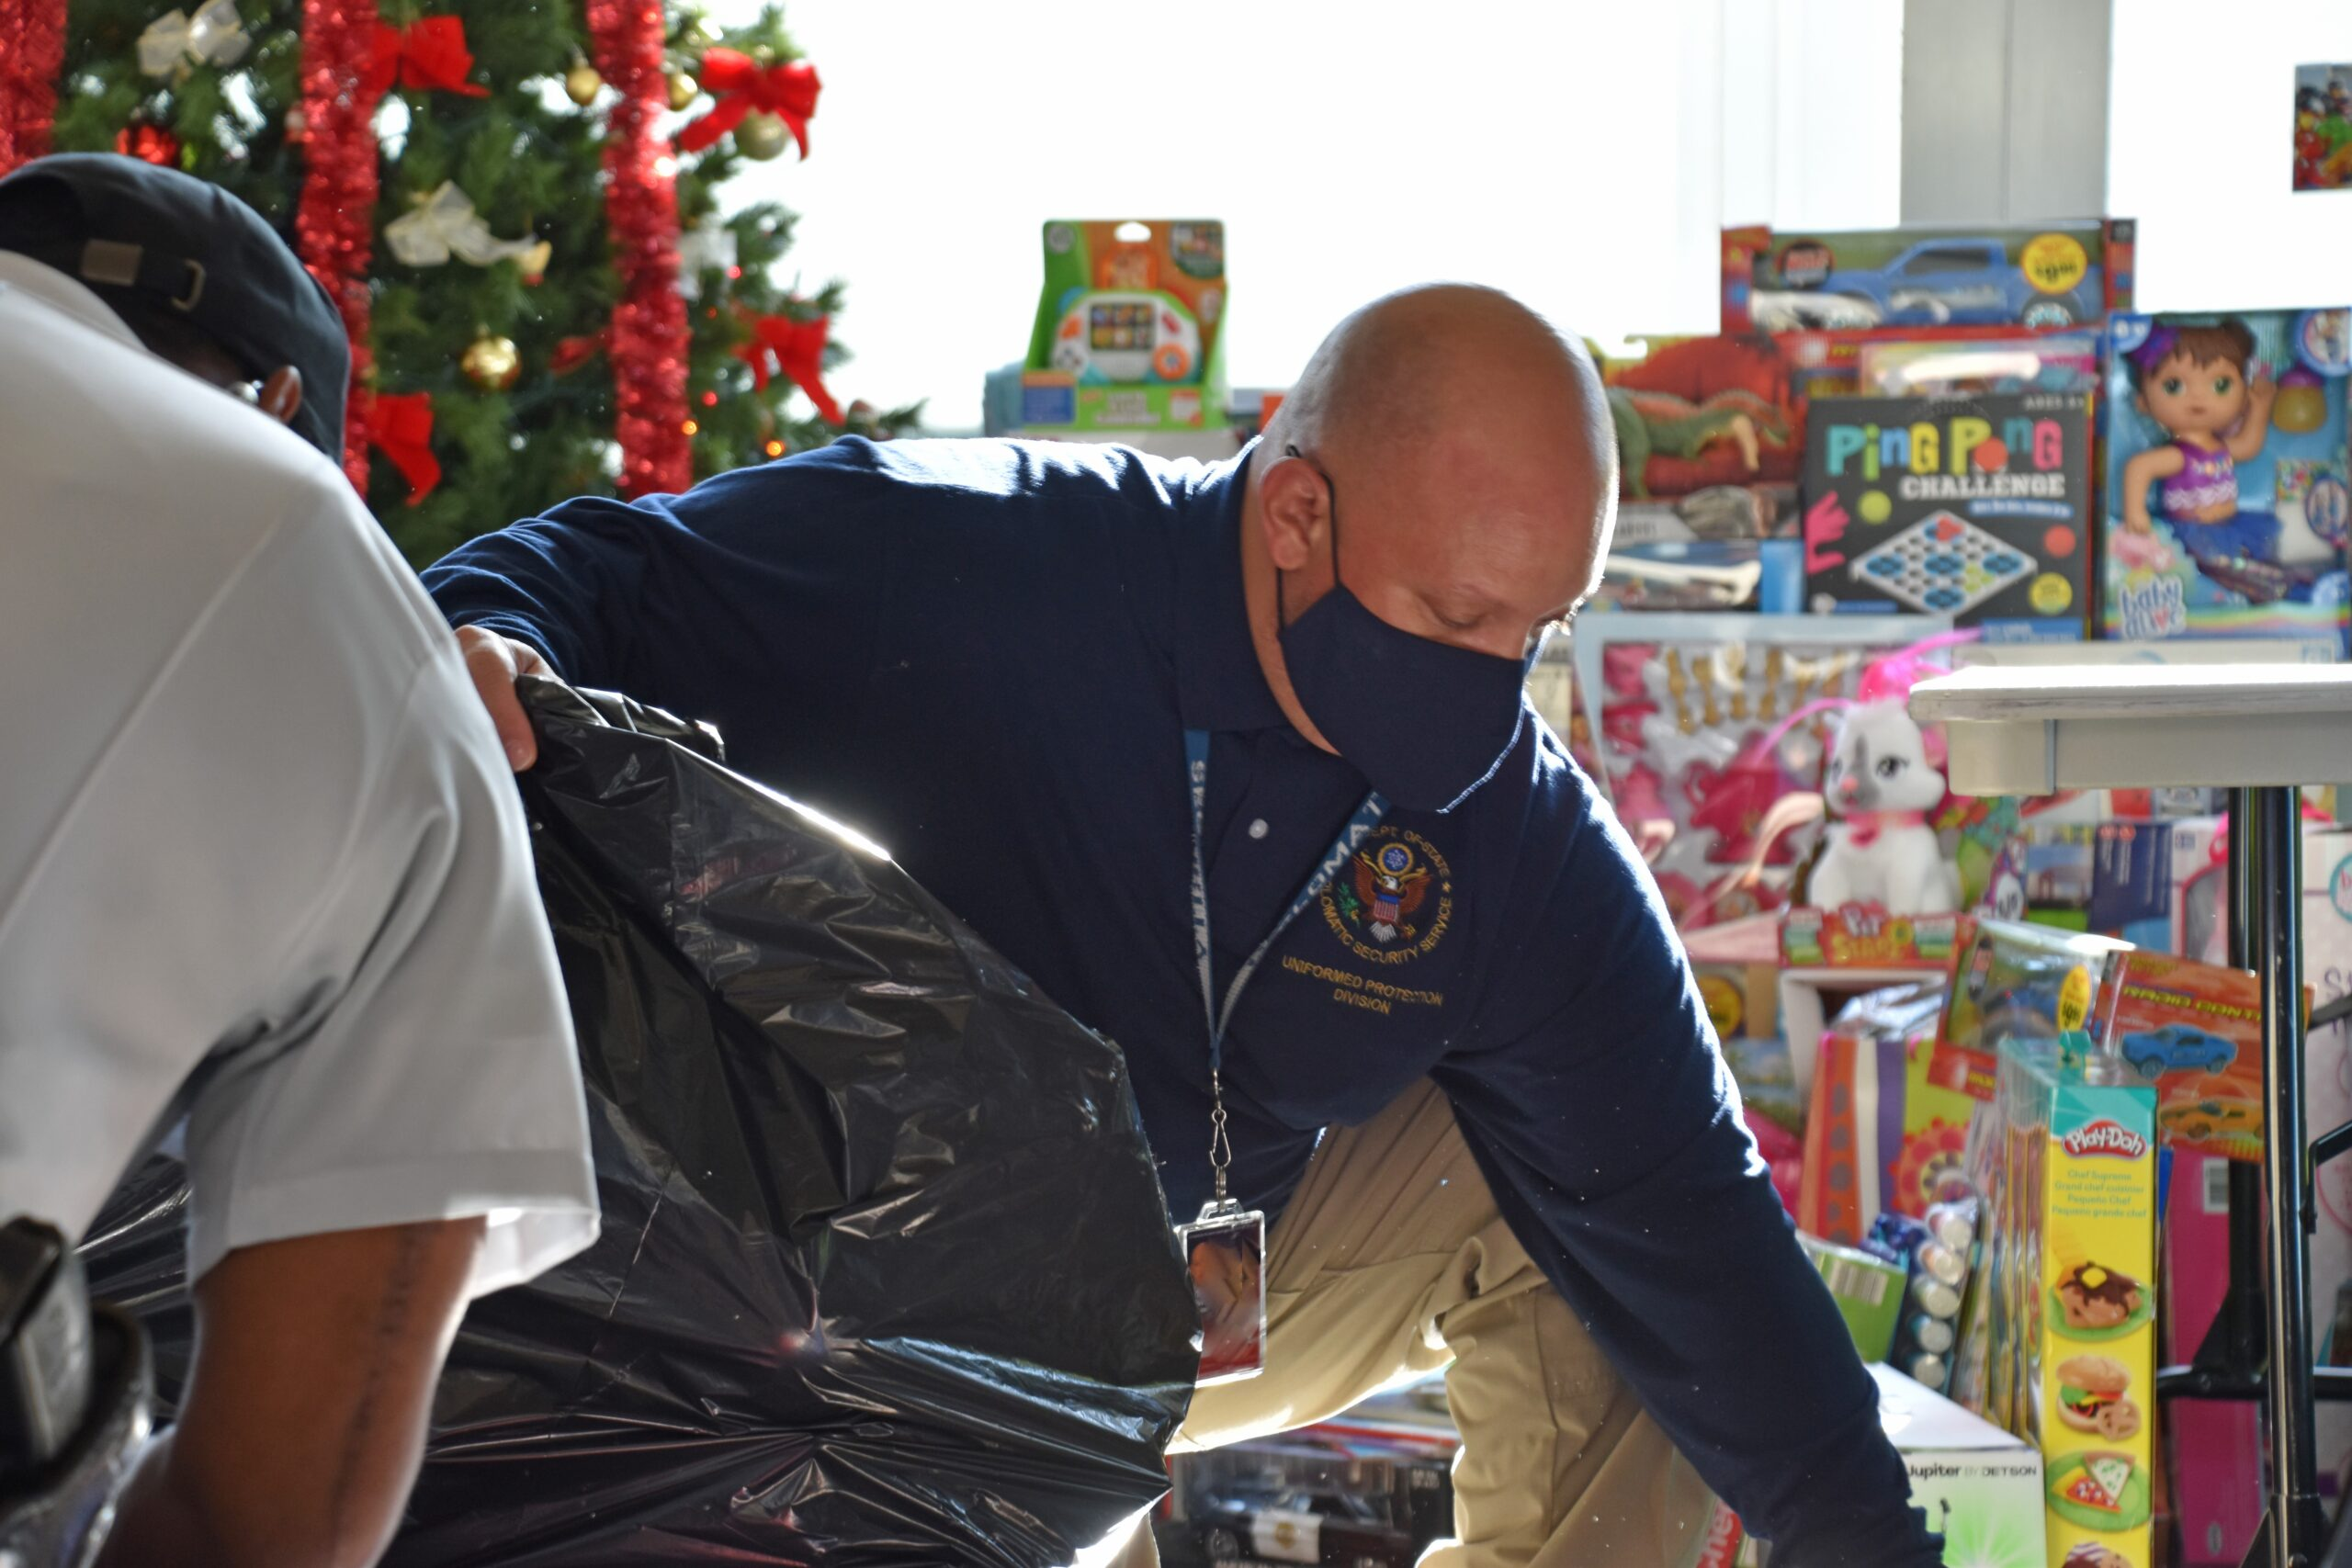 A DSS security officer packs toys collected from Department of State employees and provided to the USMC Toys for Tots program, December 17, 2020. (U.S. Department of State photo)